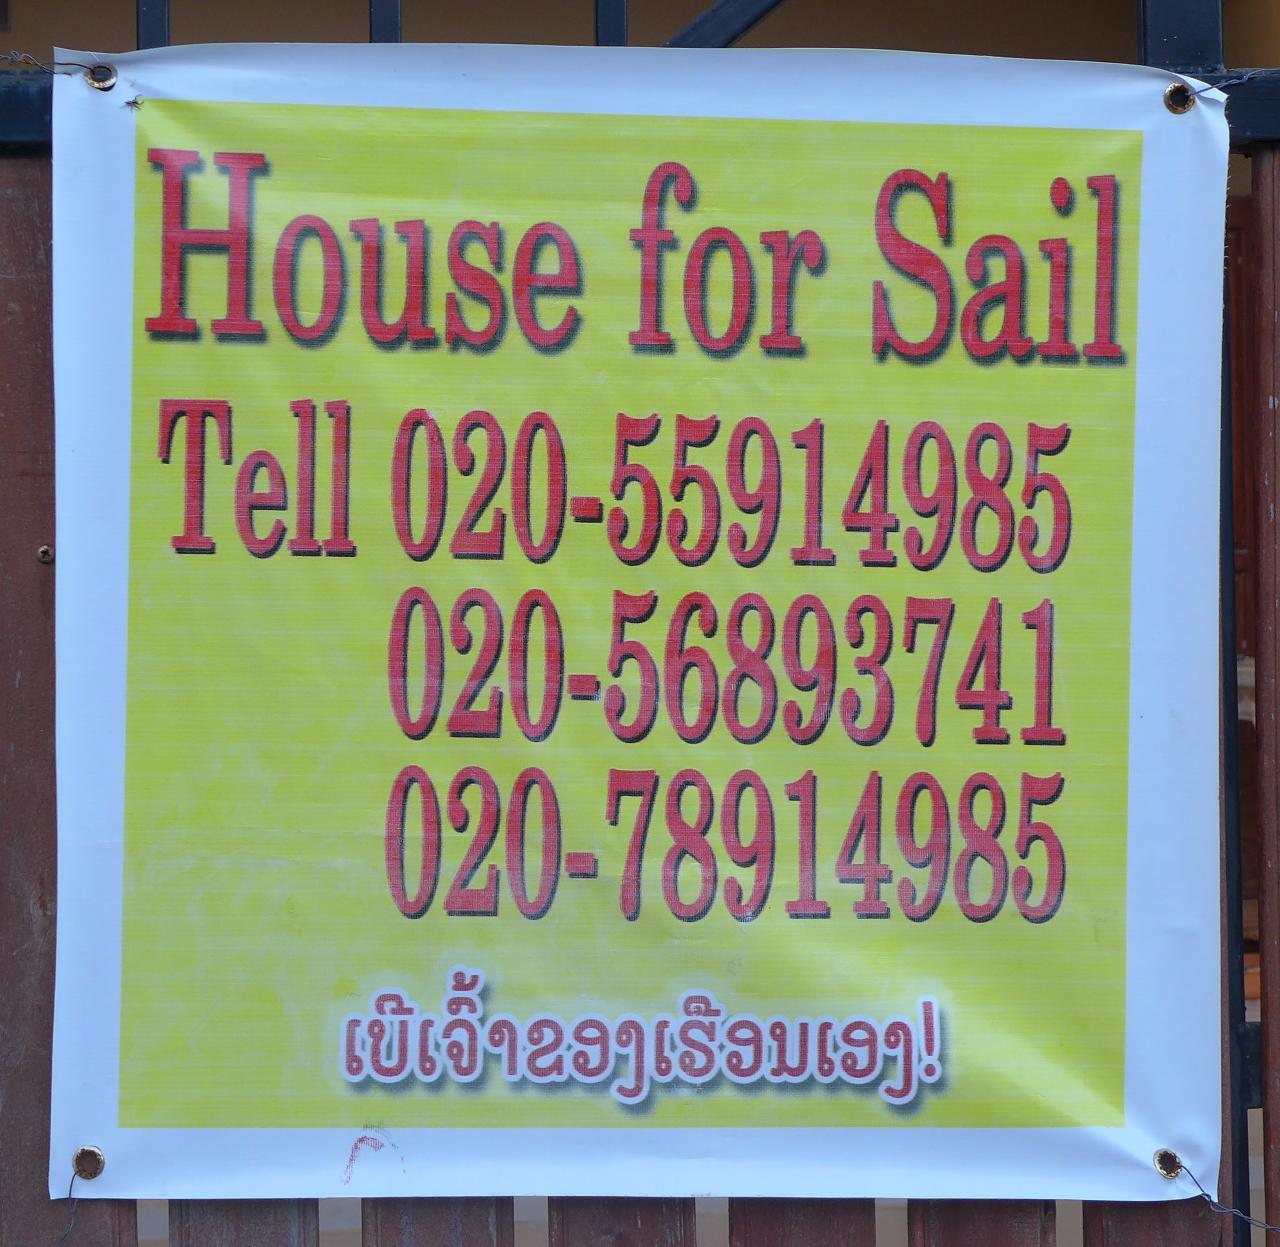 House for Sail